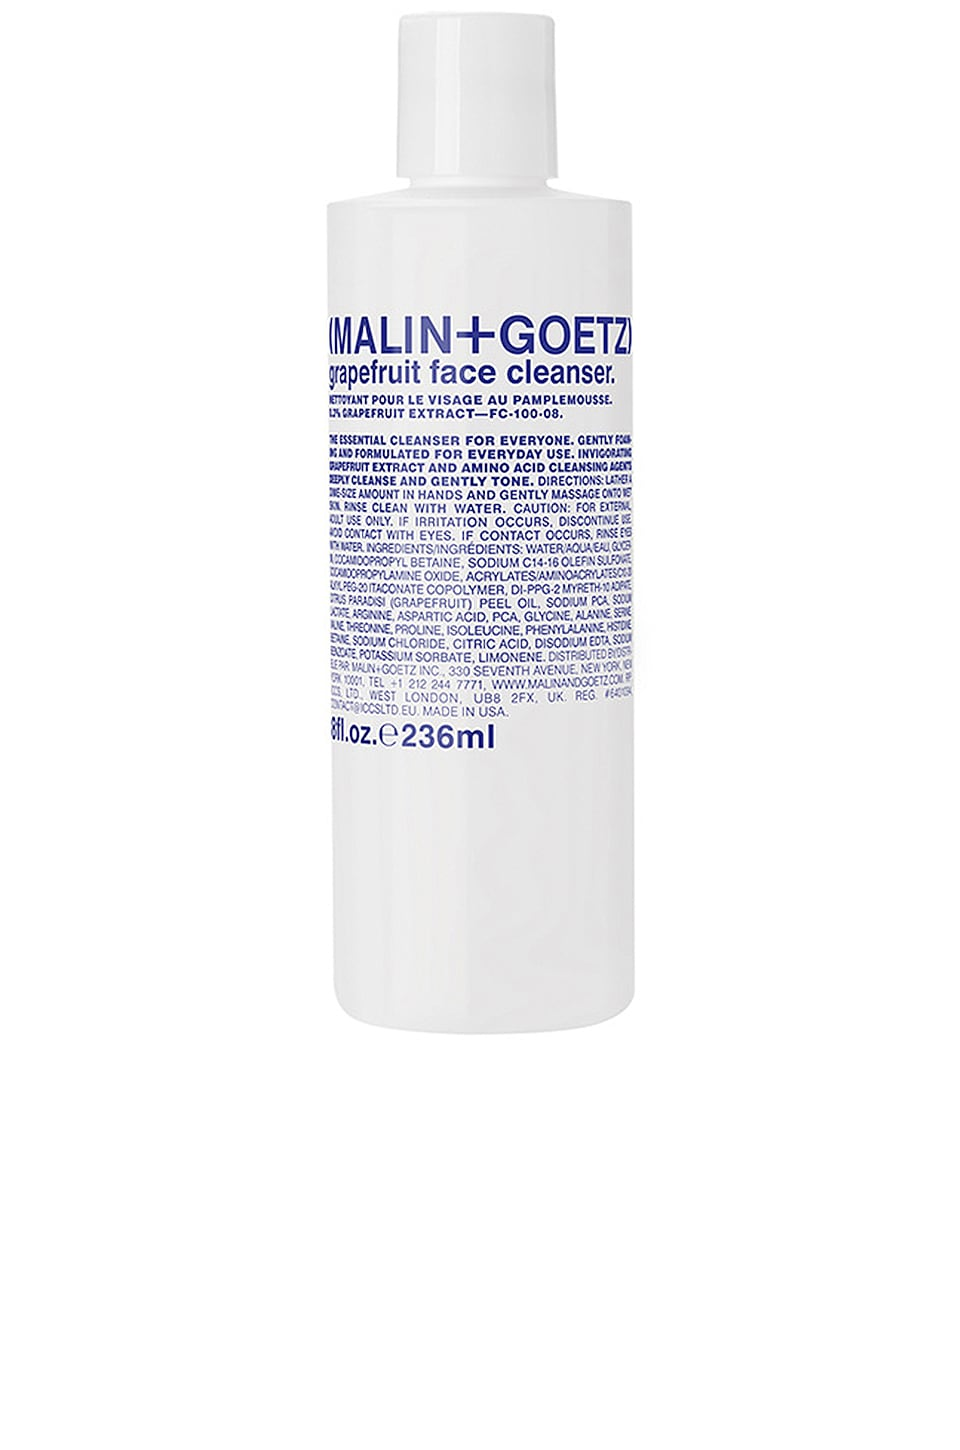 (MALIN+GOETZ) Grapefruit Face Cleanser